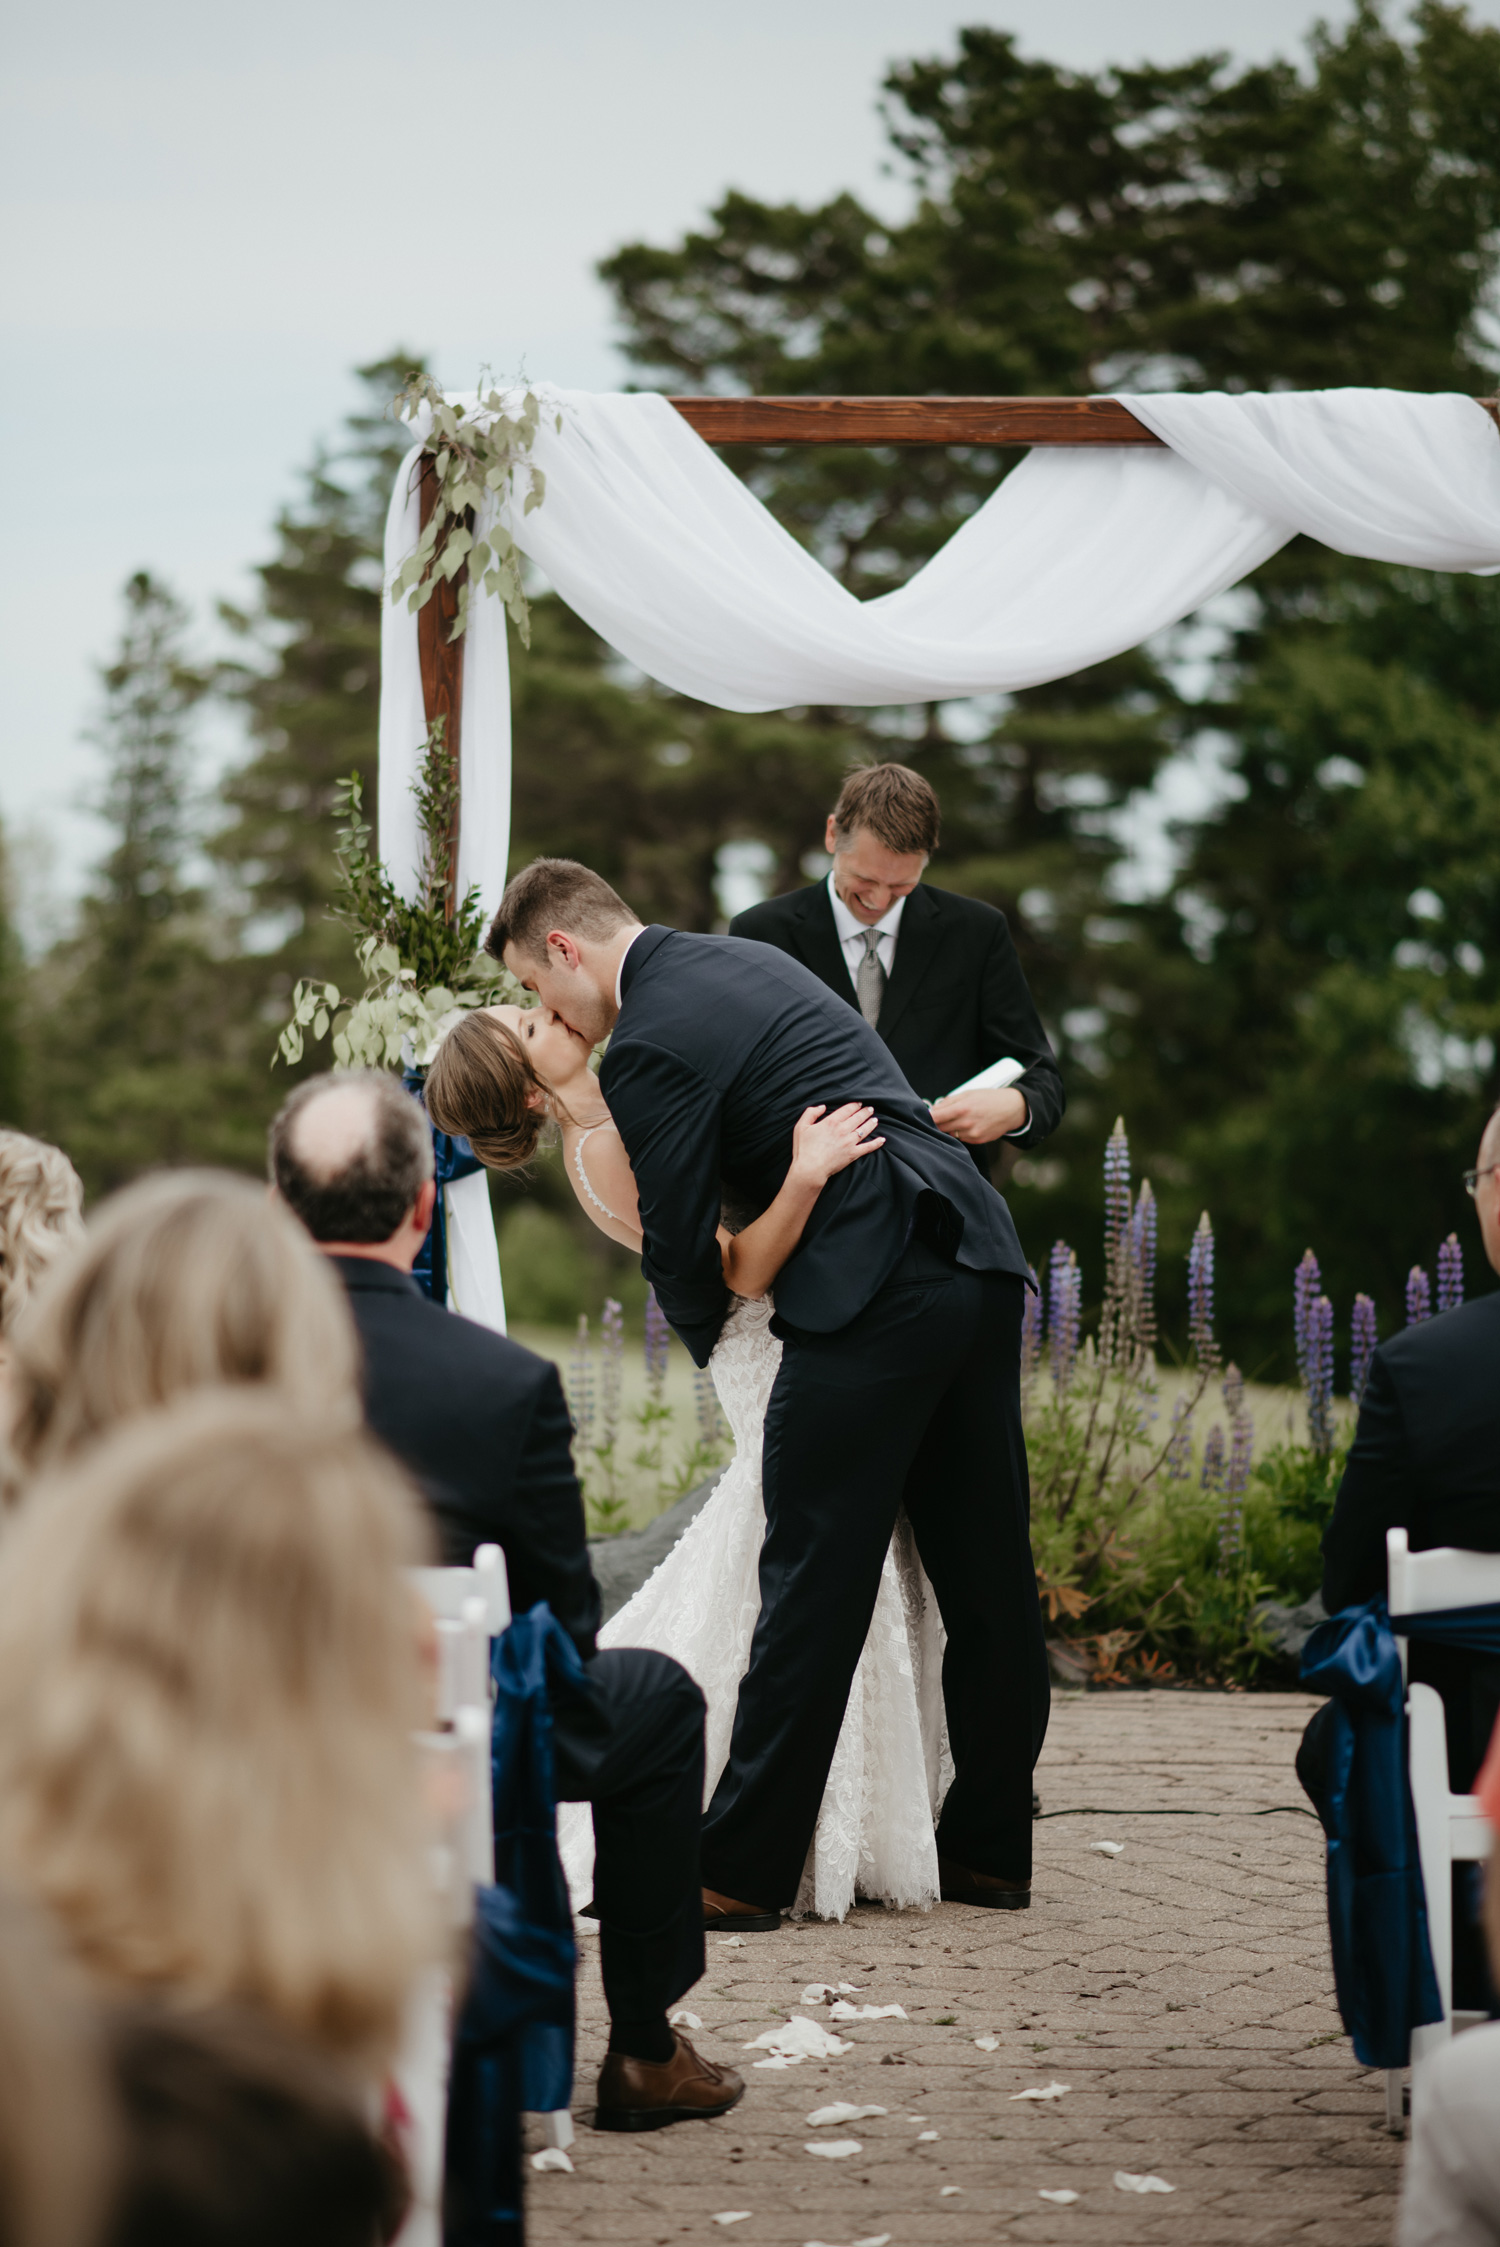 Bride and groom first kiss during outdoor ceremony